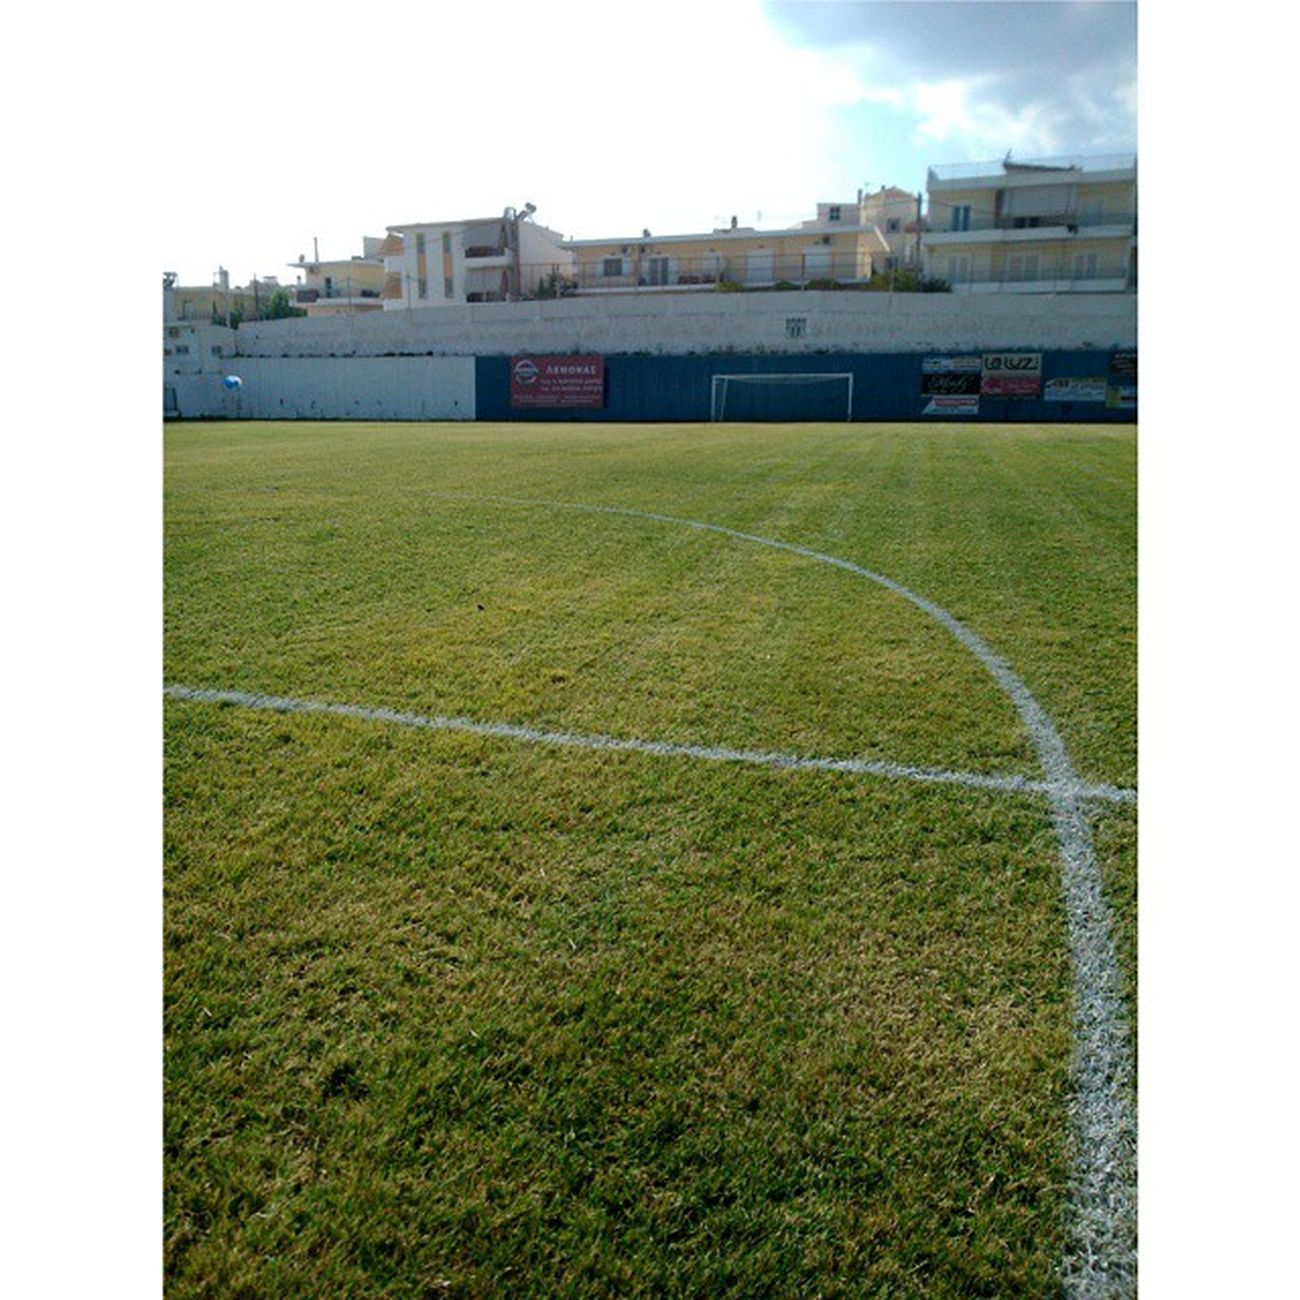 Football 👌⚽ Football Match Stadium Passion Love Epsana Grass Friends Happy Igers Instaperfect Instagood Photooftheday